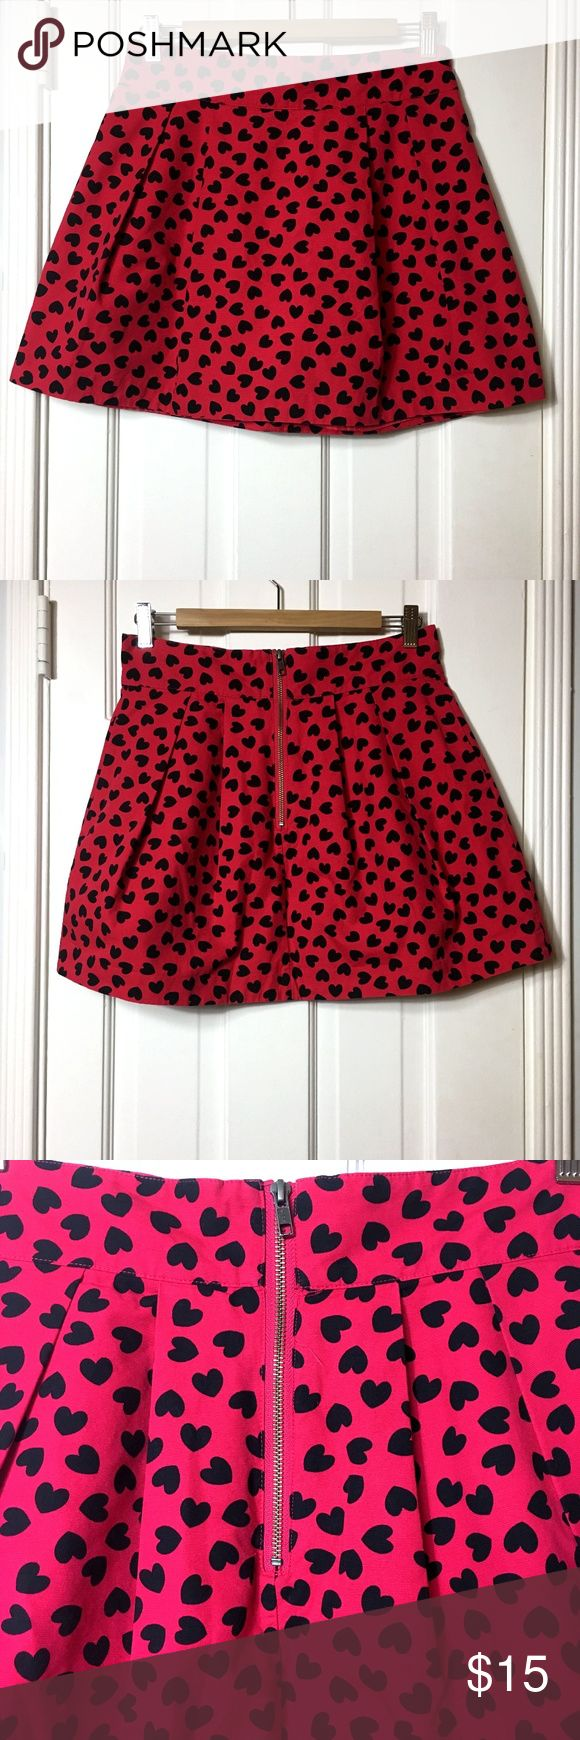 Divided red hearts mini skirt sz 4 Divided red hearts mini skirt sz 4 Made in: China Size: 4 Fit: fitted waist, flare bottom Waist: 28 Hips: 38 Length: 15.5 Material:cotton exterior, polyester lining Colors: red, black  Condition: excellent, like new #CoxyCloset #skirt #miniskirt #divided #hearts #cotton #minnie #casual Divided Skirts Mini